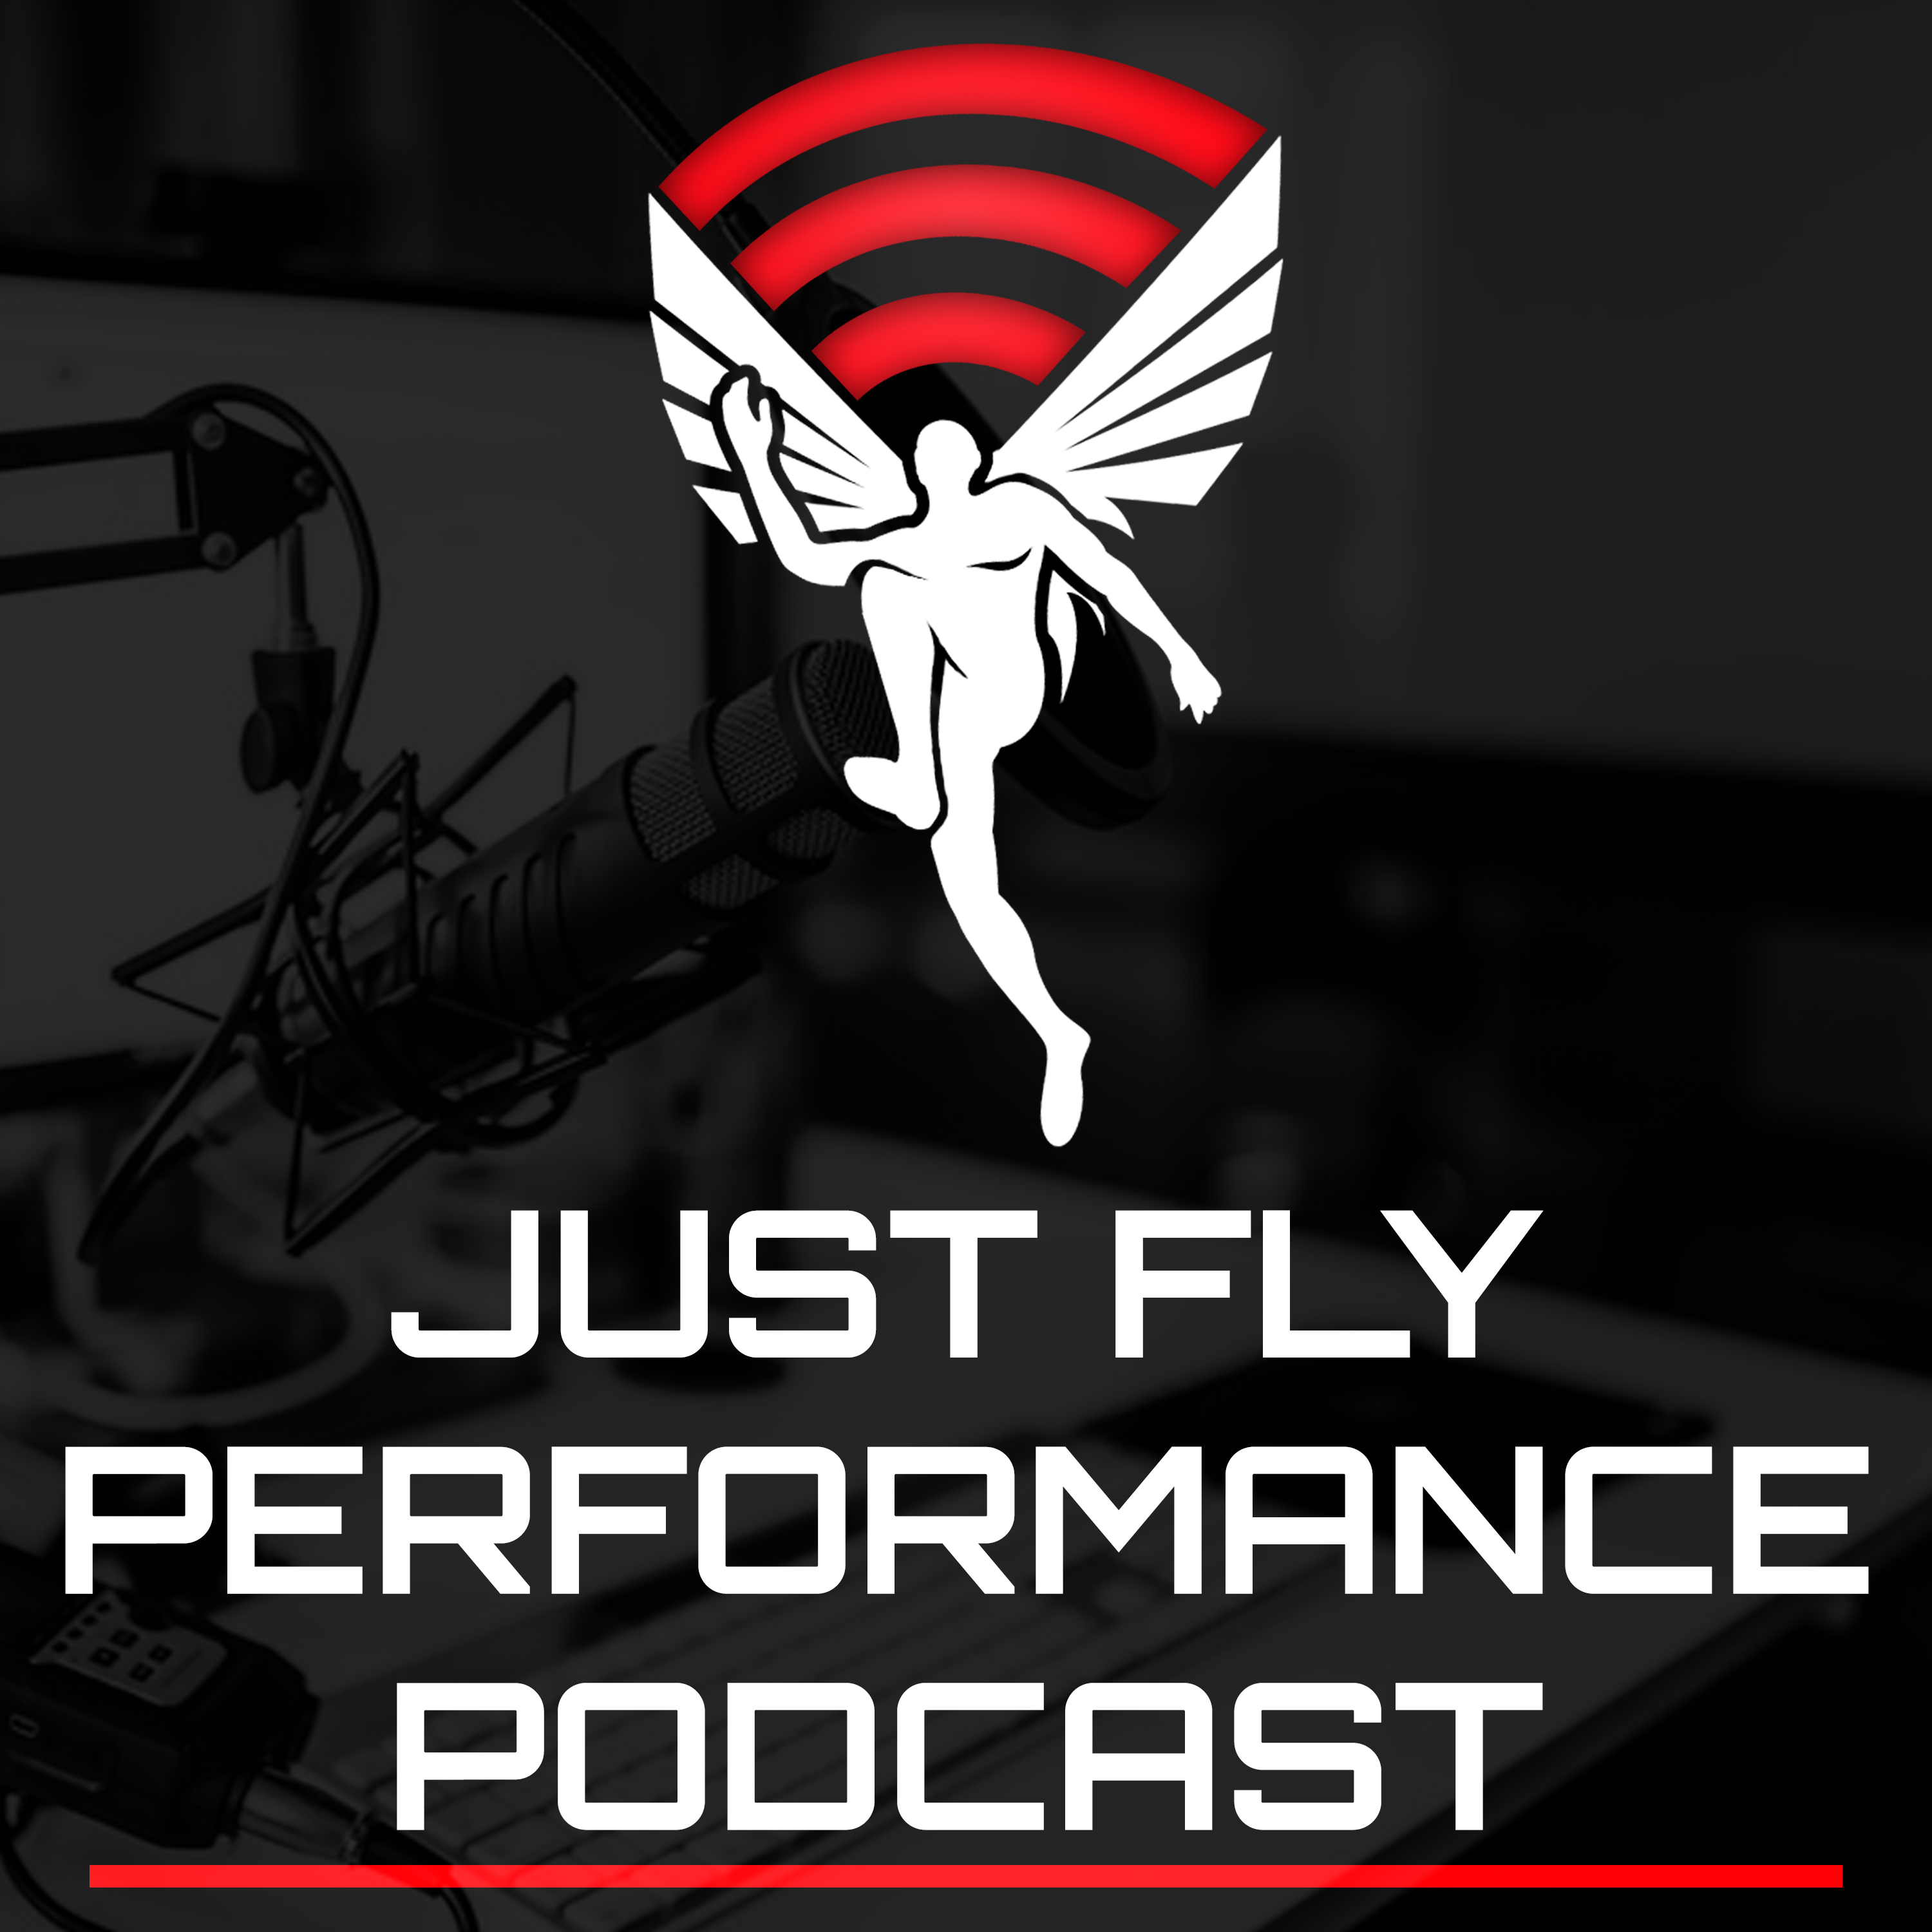 A highlight from 274: Alex Effer on Stance-Driven Performance Training, Crawling Mechanics, and Sensory Movement Principles